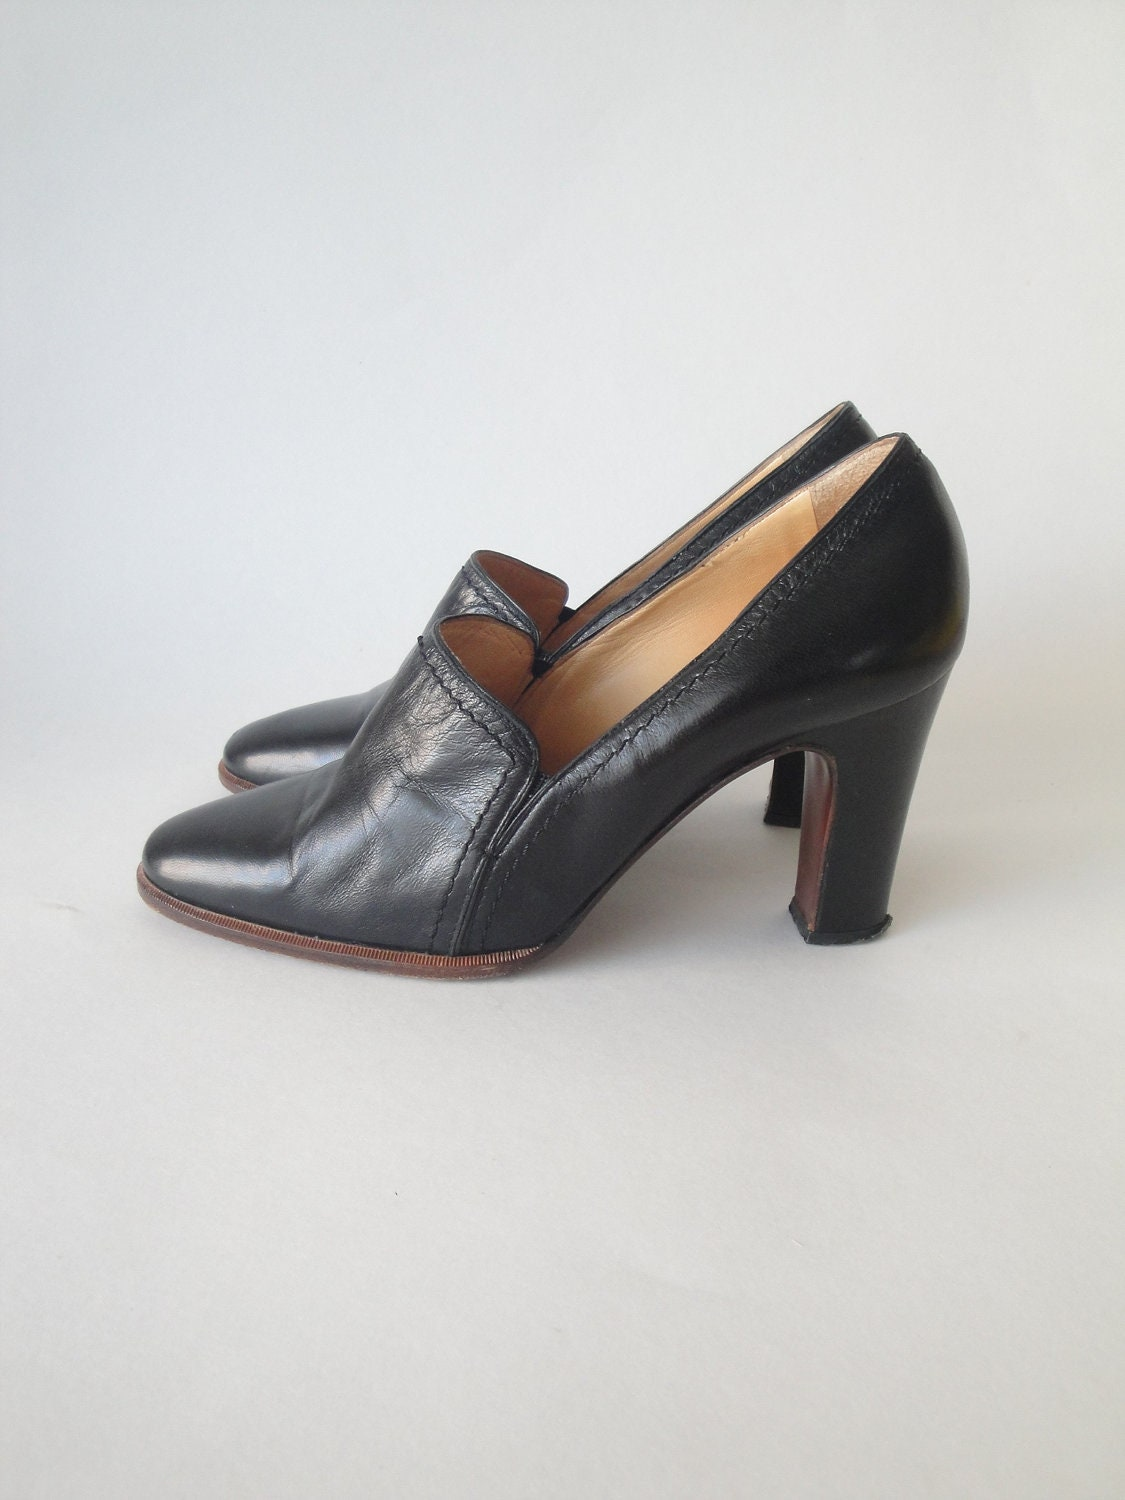 sale vintage black leather pumps casadei shoes high heels. Black Bedroom Furniture Sets. Home Design Ideas